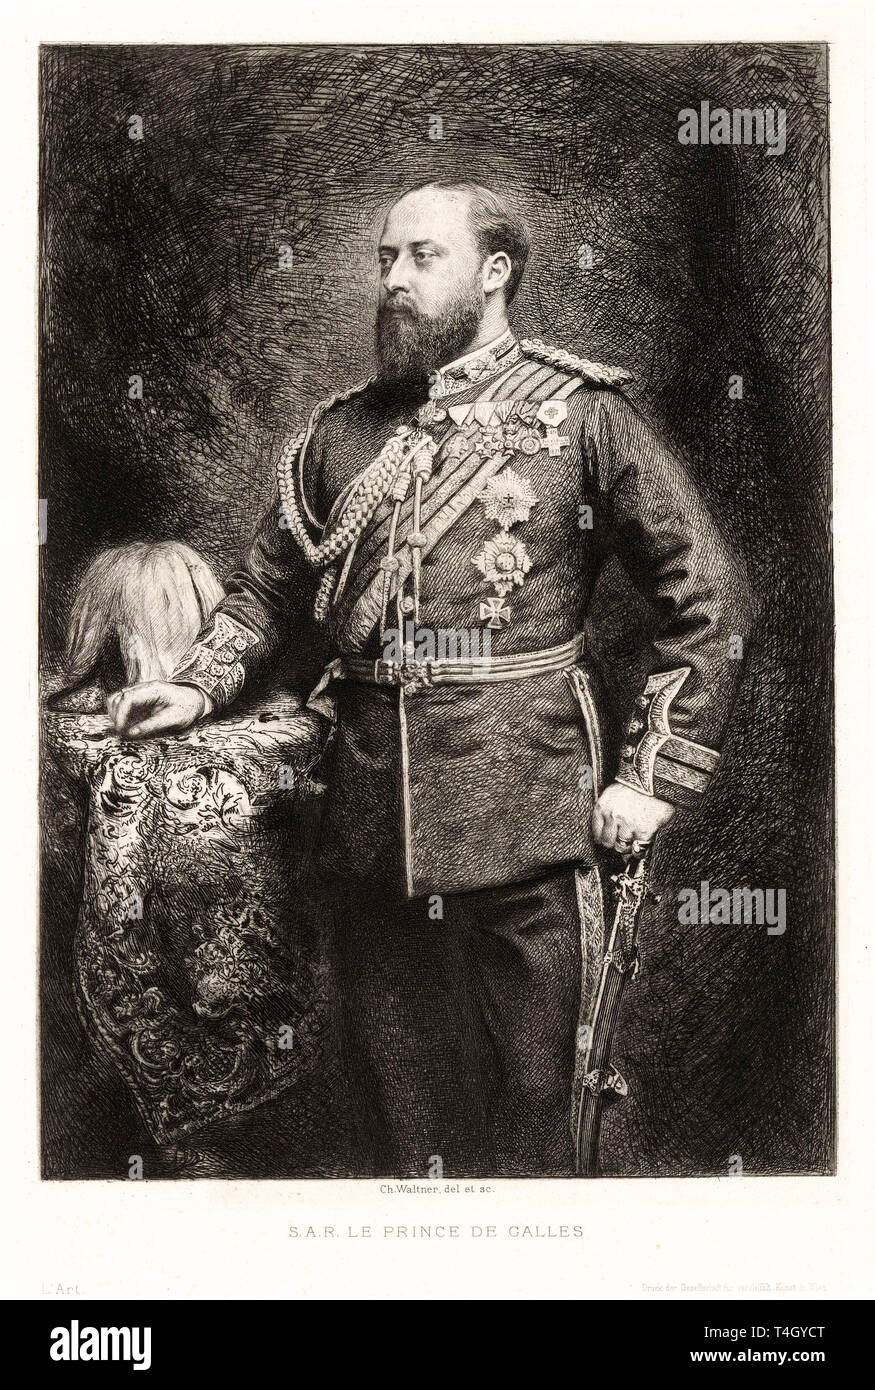 King Edward VII, portrait engraving by Charles Albert Waltner, 1878 - Stock Image